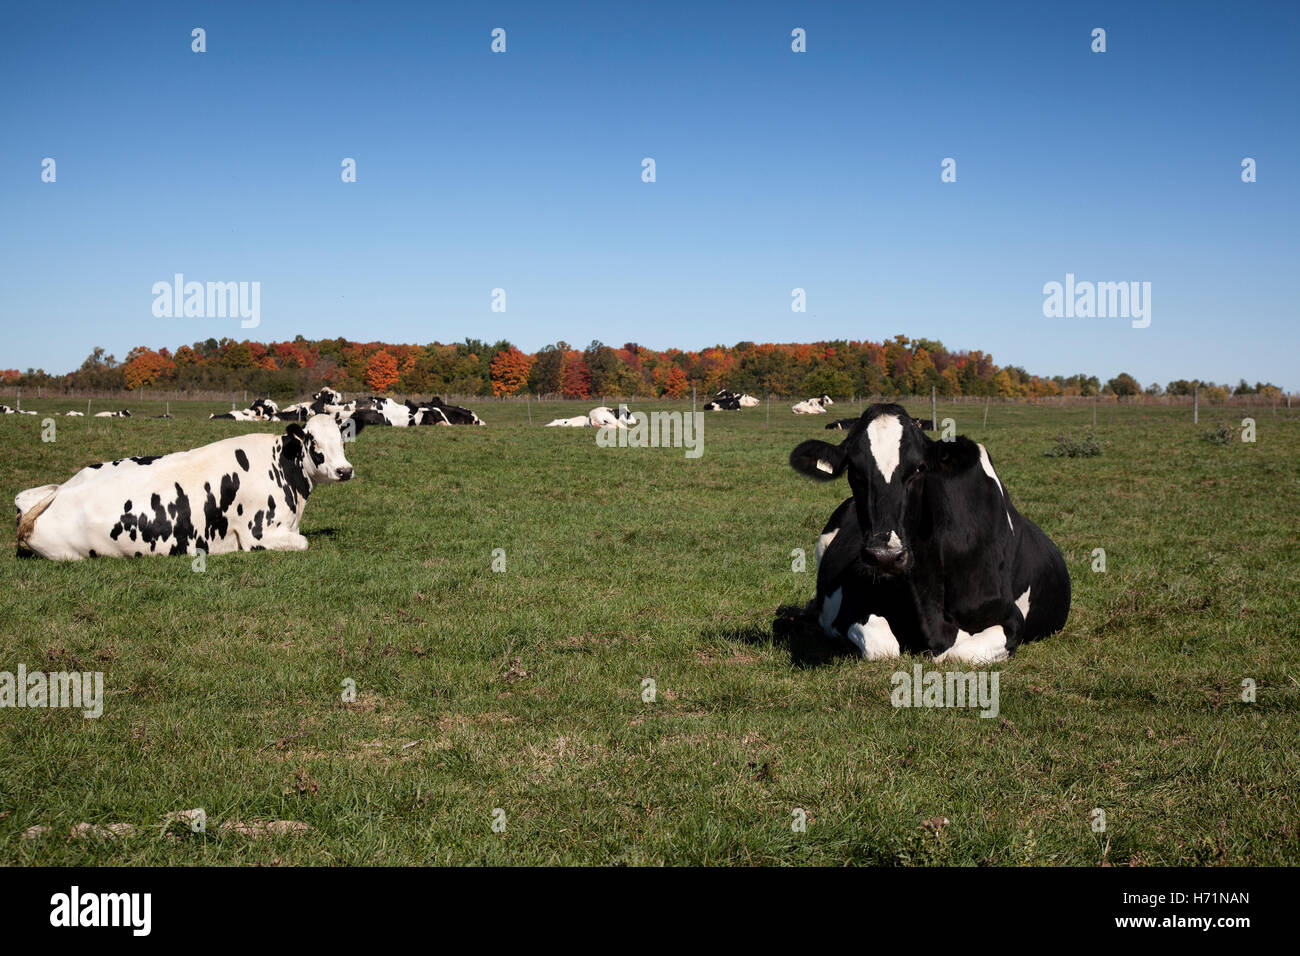 jersey cows livestock animal black white beef milk field farm farming agriculture industry free range outside nature - Stock Image